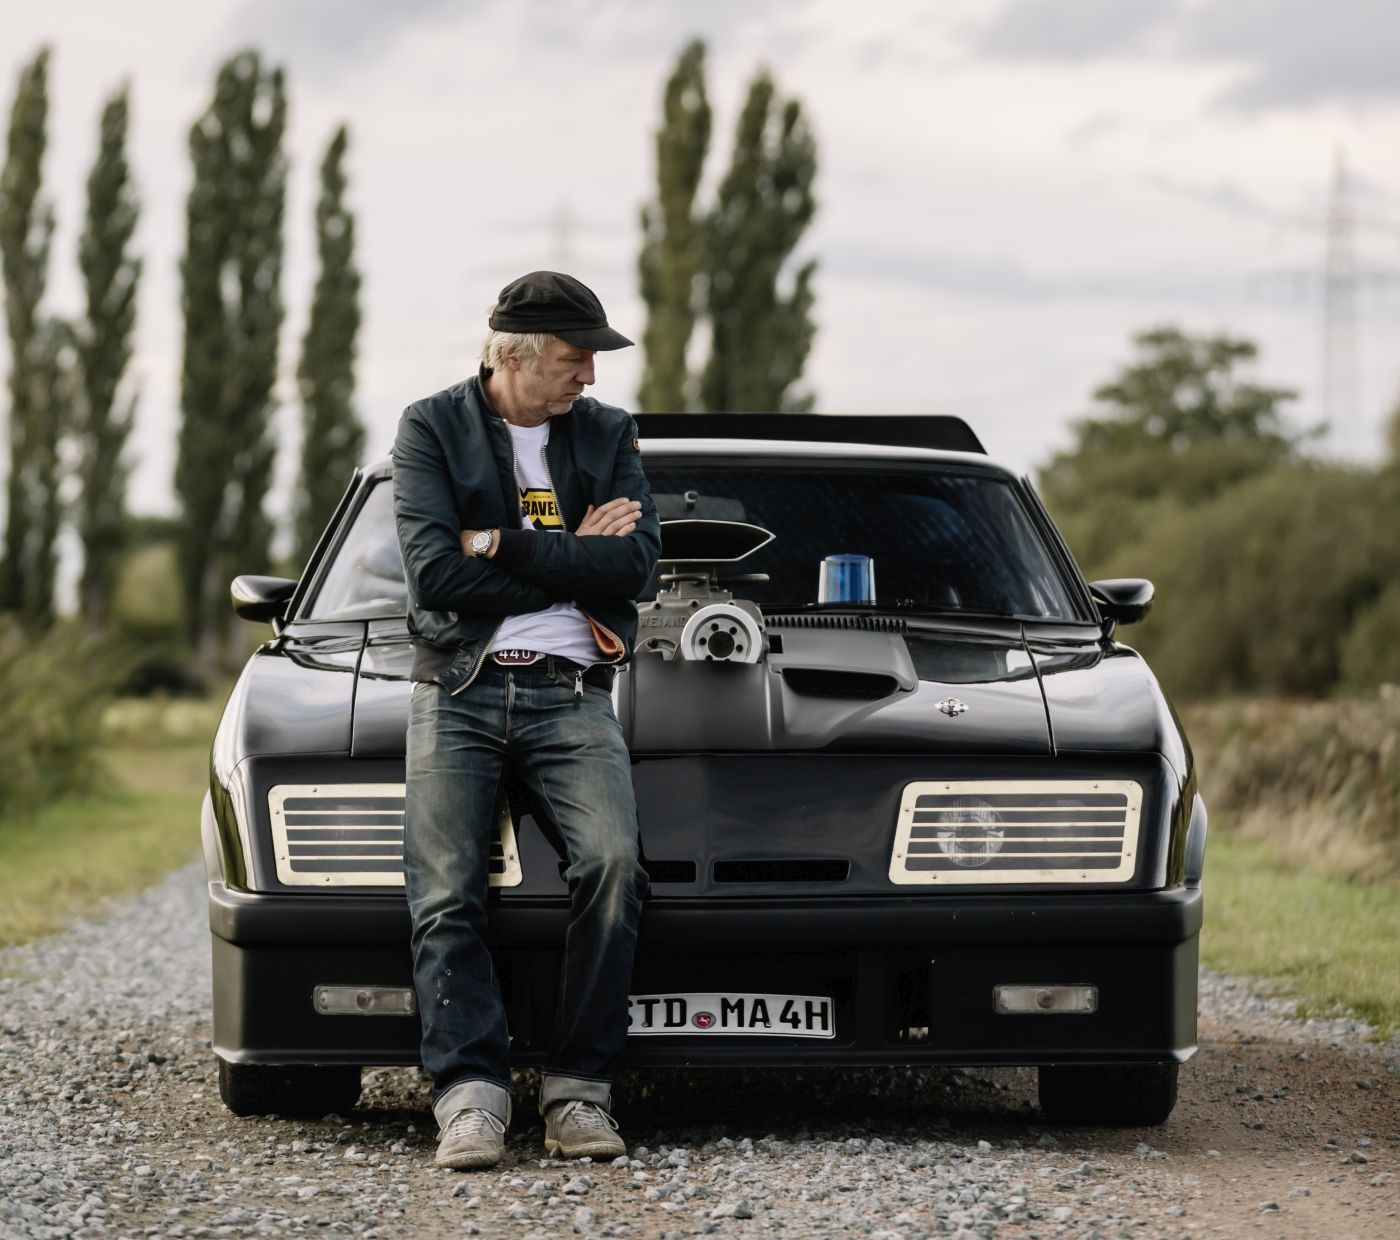 Mad Max 1974 Ford Falcon Police Interceptor Helge Thomsen